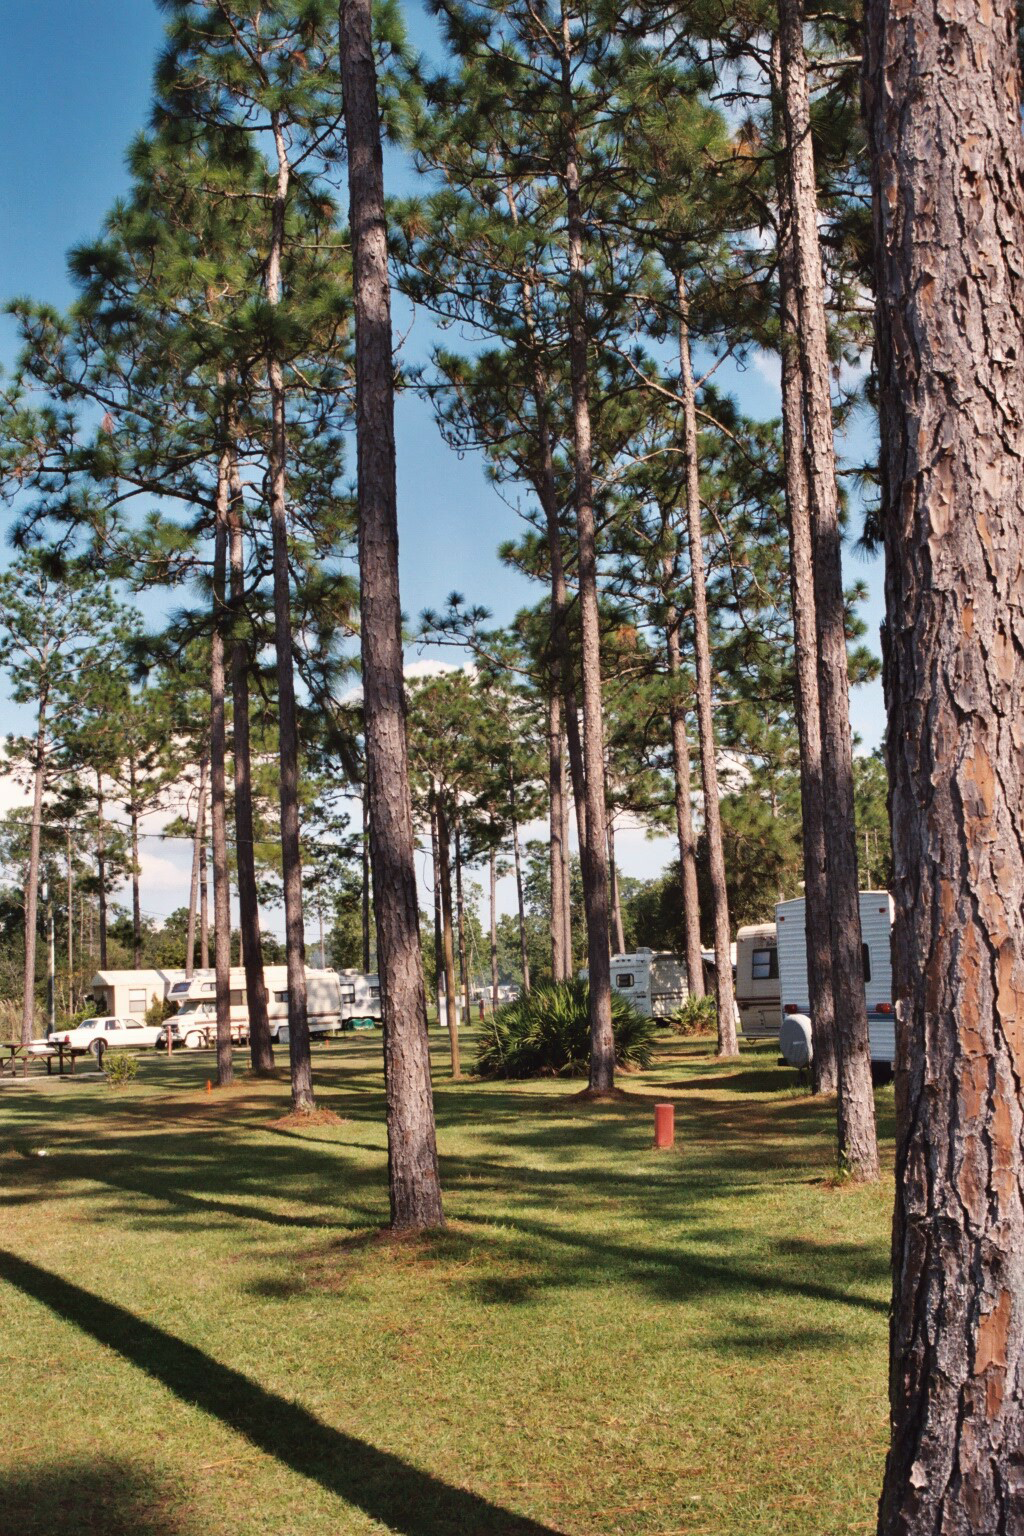 Whispering Pines Rv Park Passport America Camping Rv Club Rv Parks And Campgrounds Florida Camping Yellowstone Camping